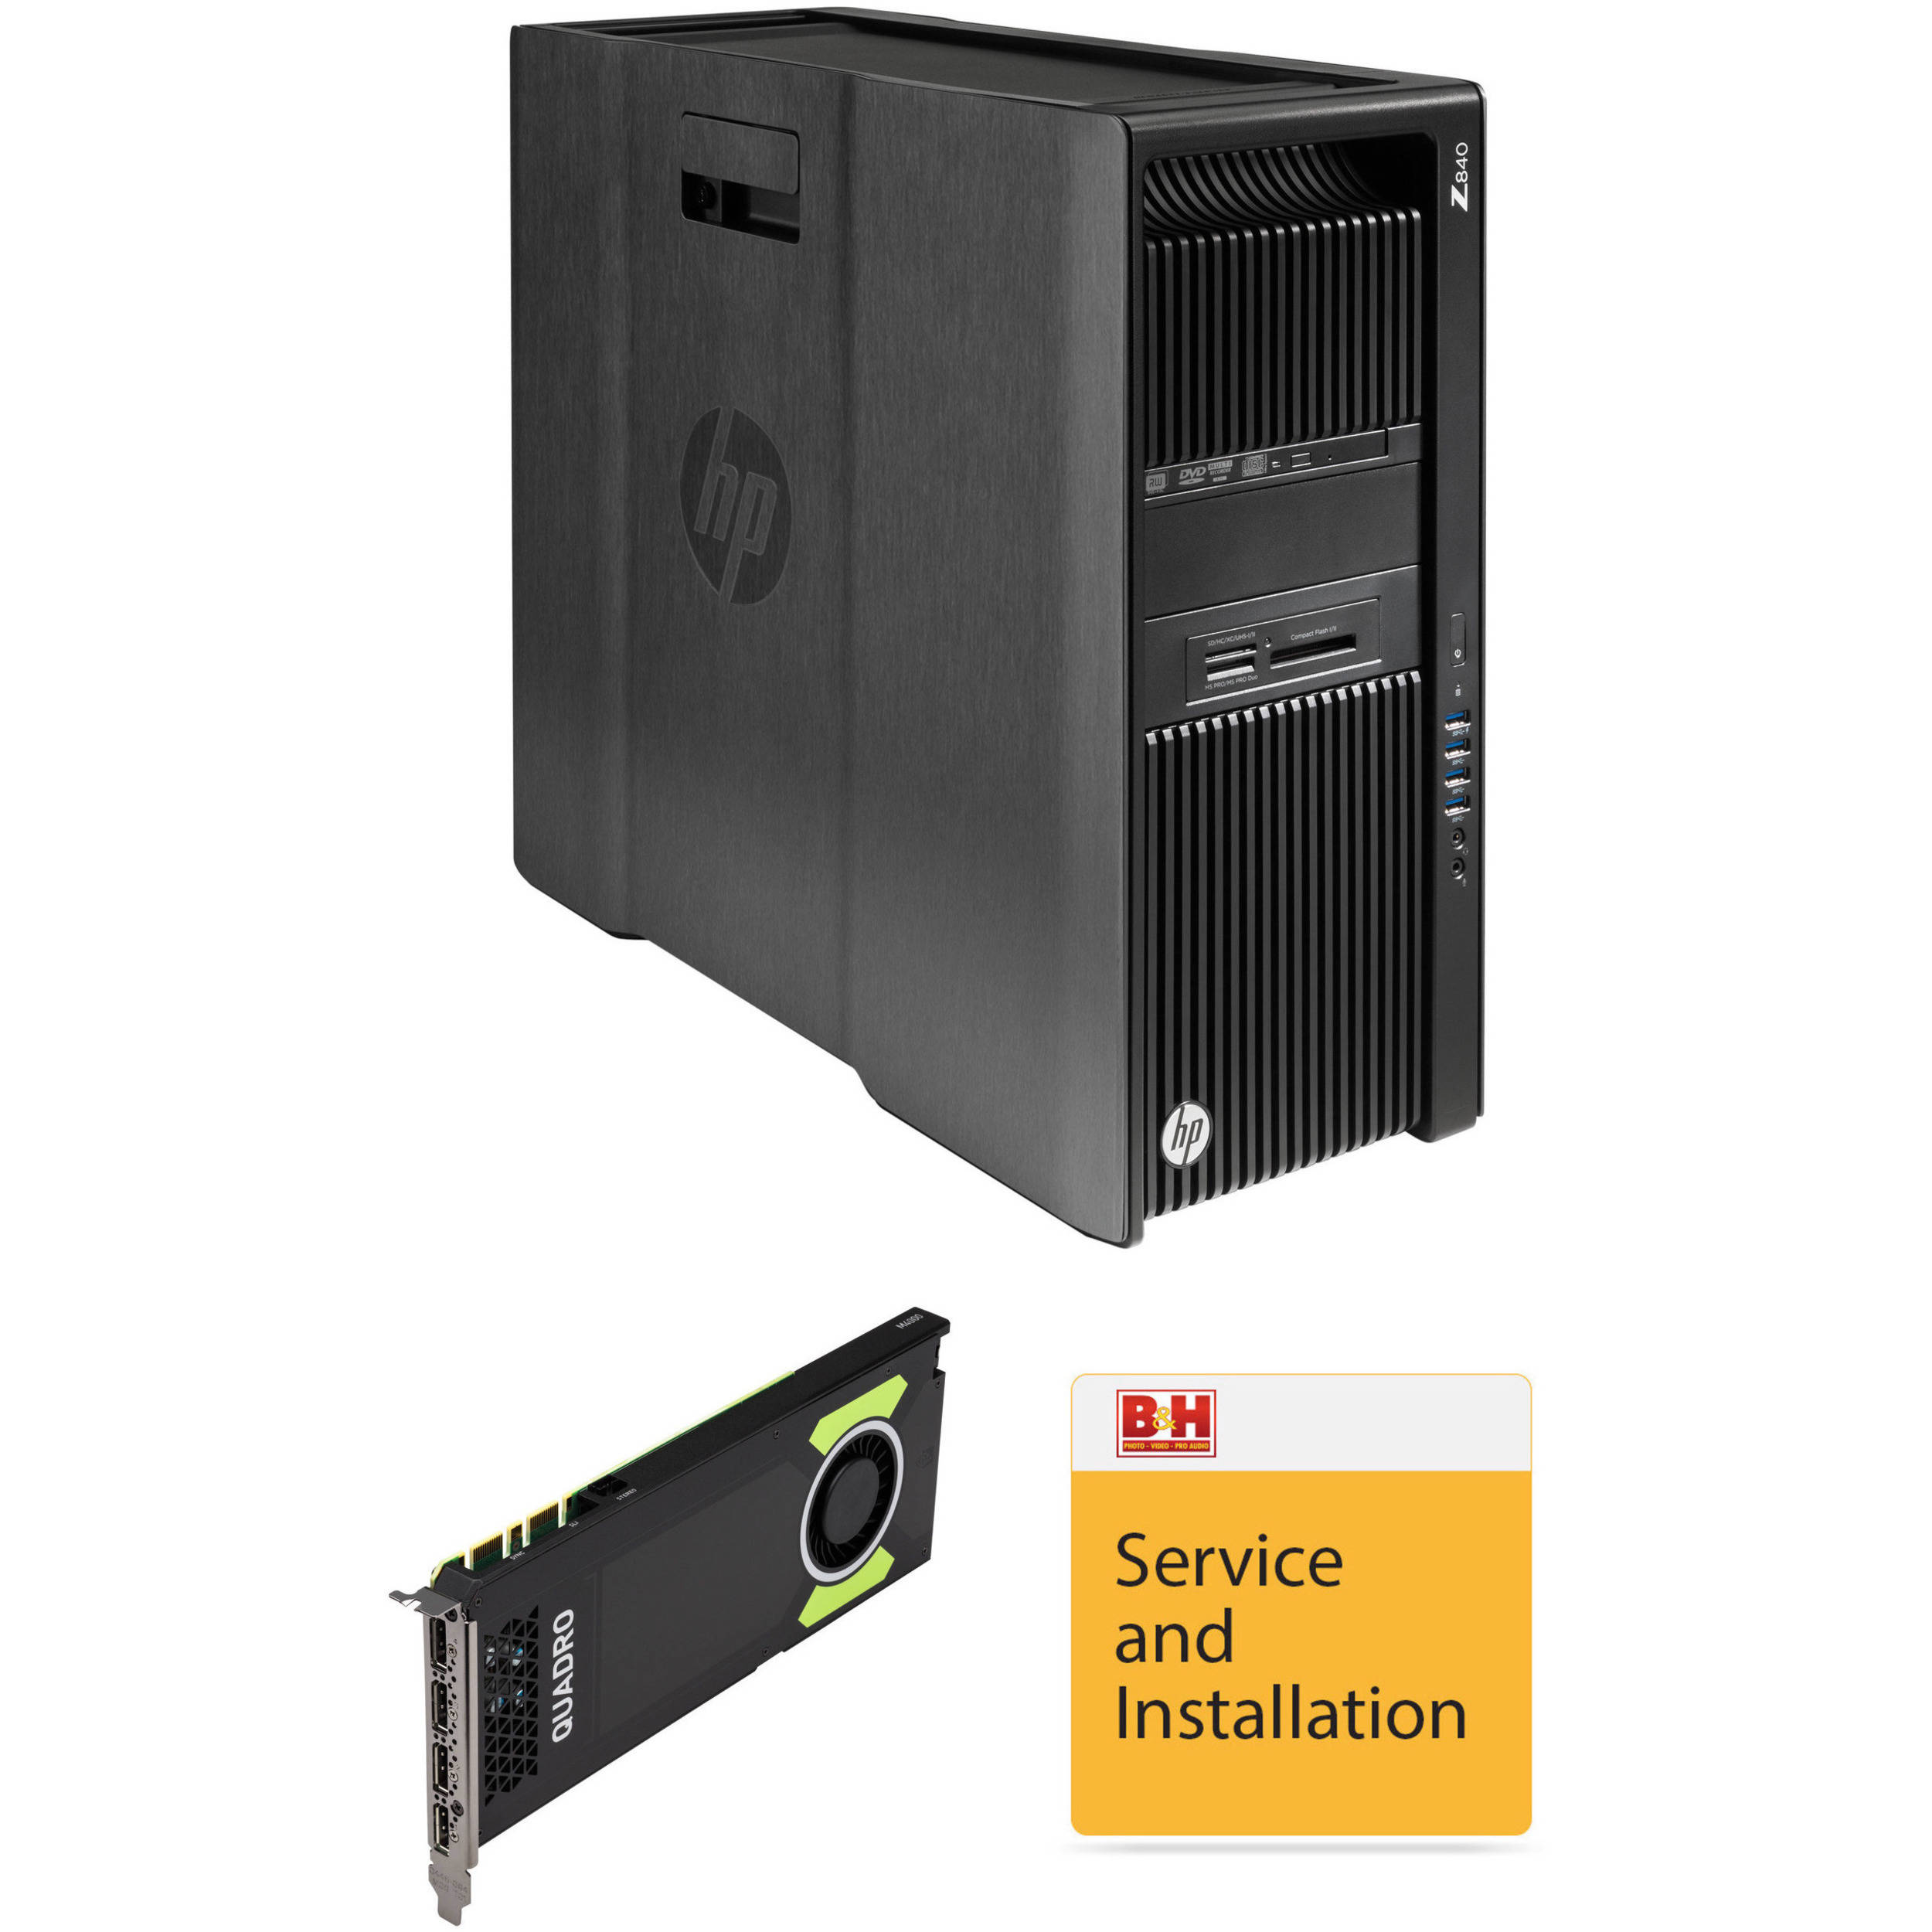 HP Z840 L0P81UT Turnkey Workstation with Quadro M4000 Graphics